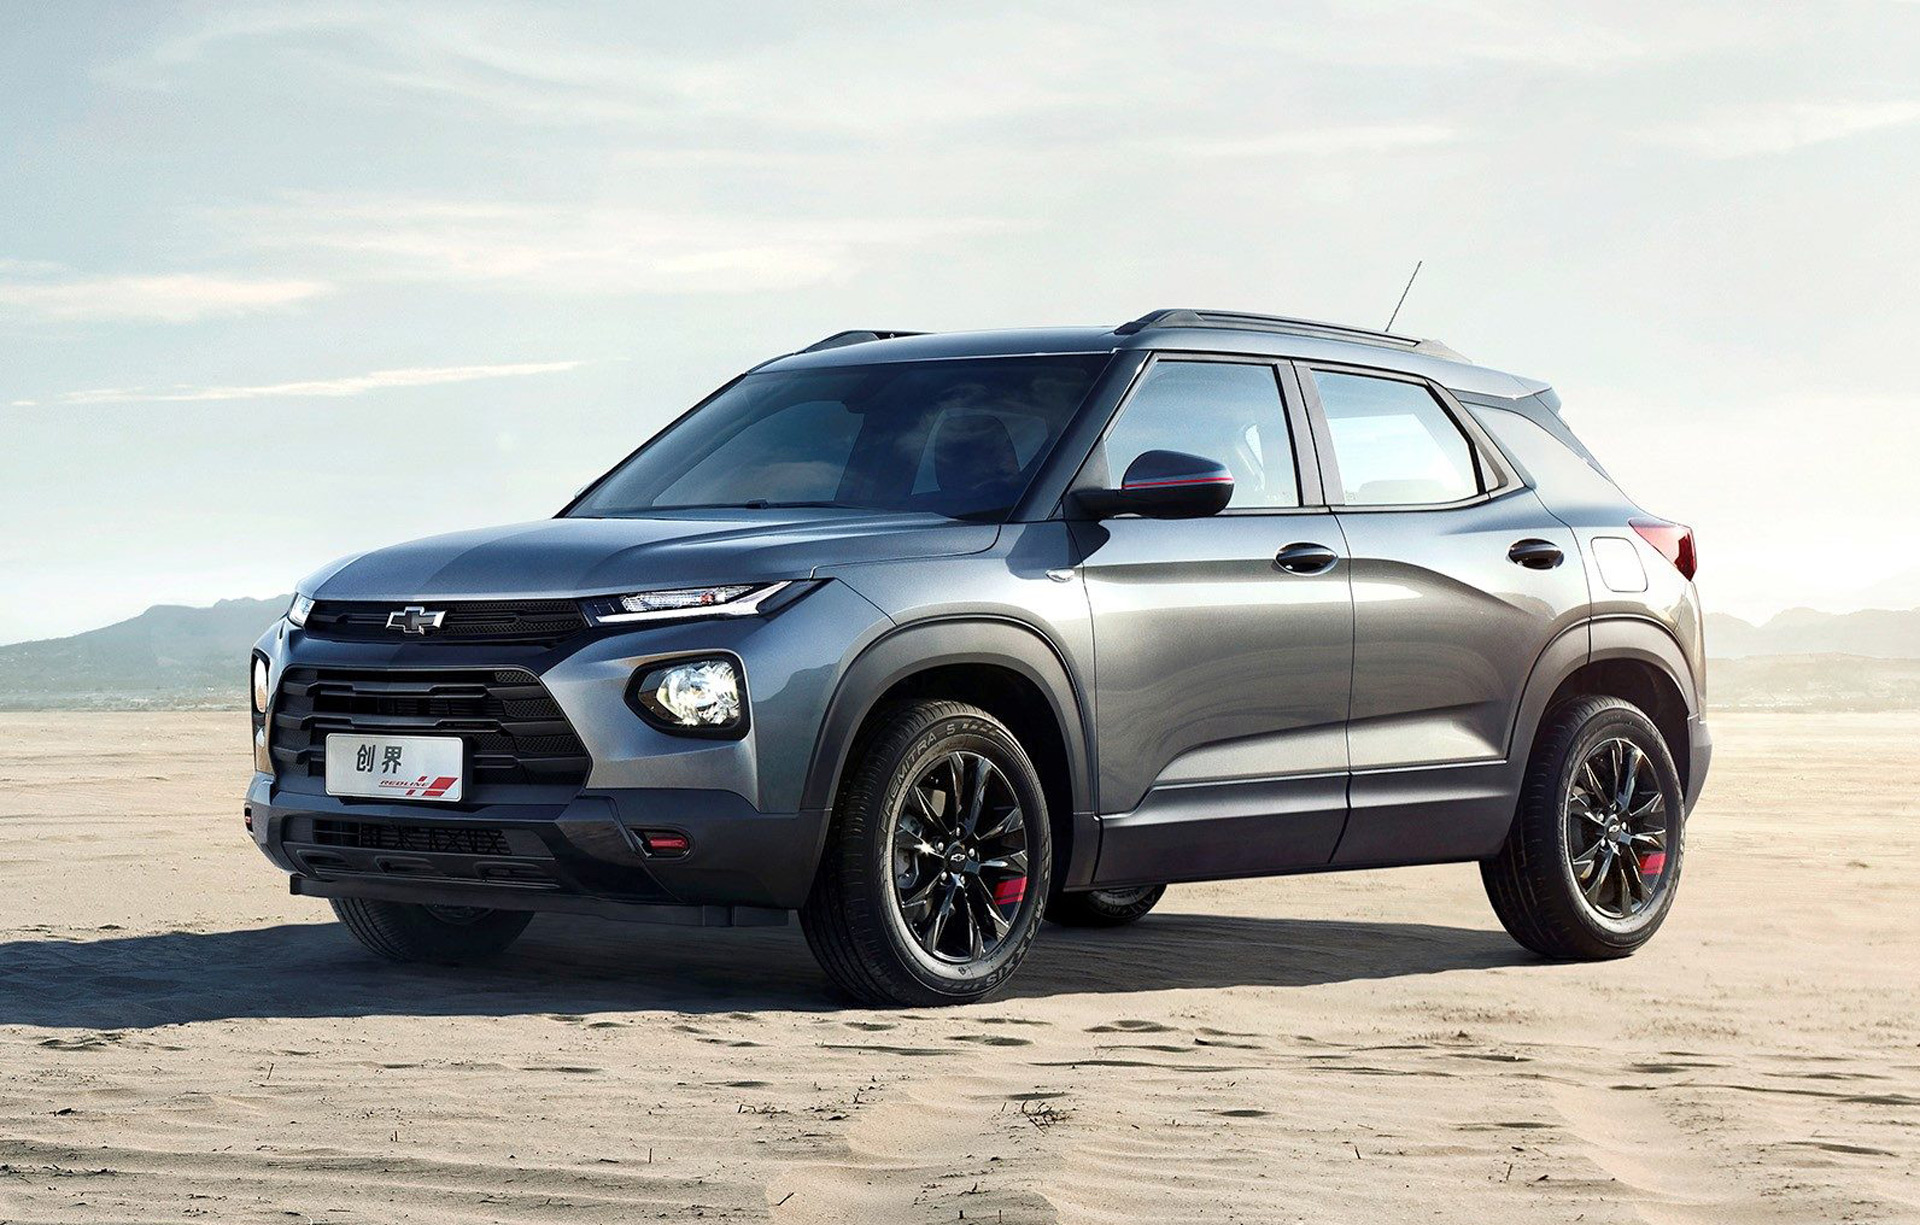 2020 chevrolet trailblazer debuts at 2019 shanghai auto show